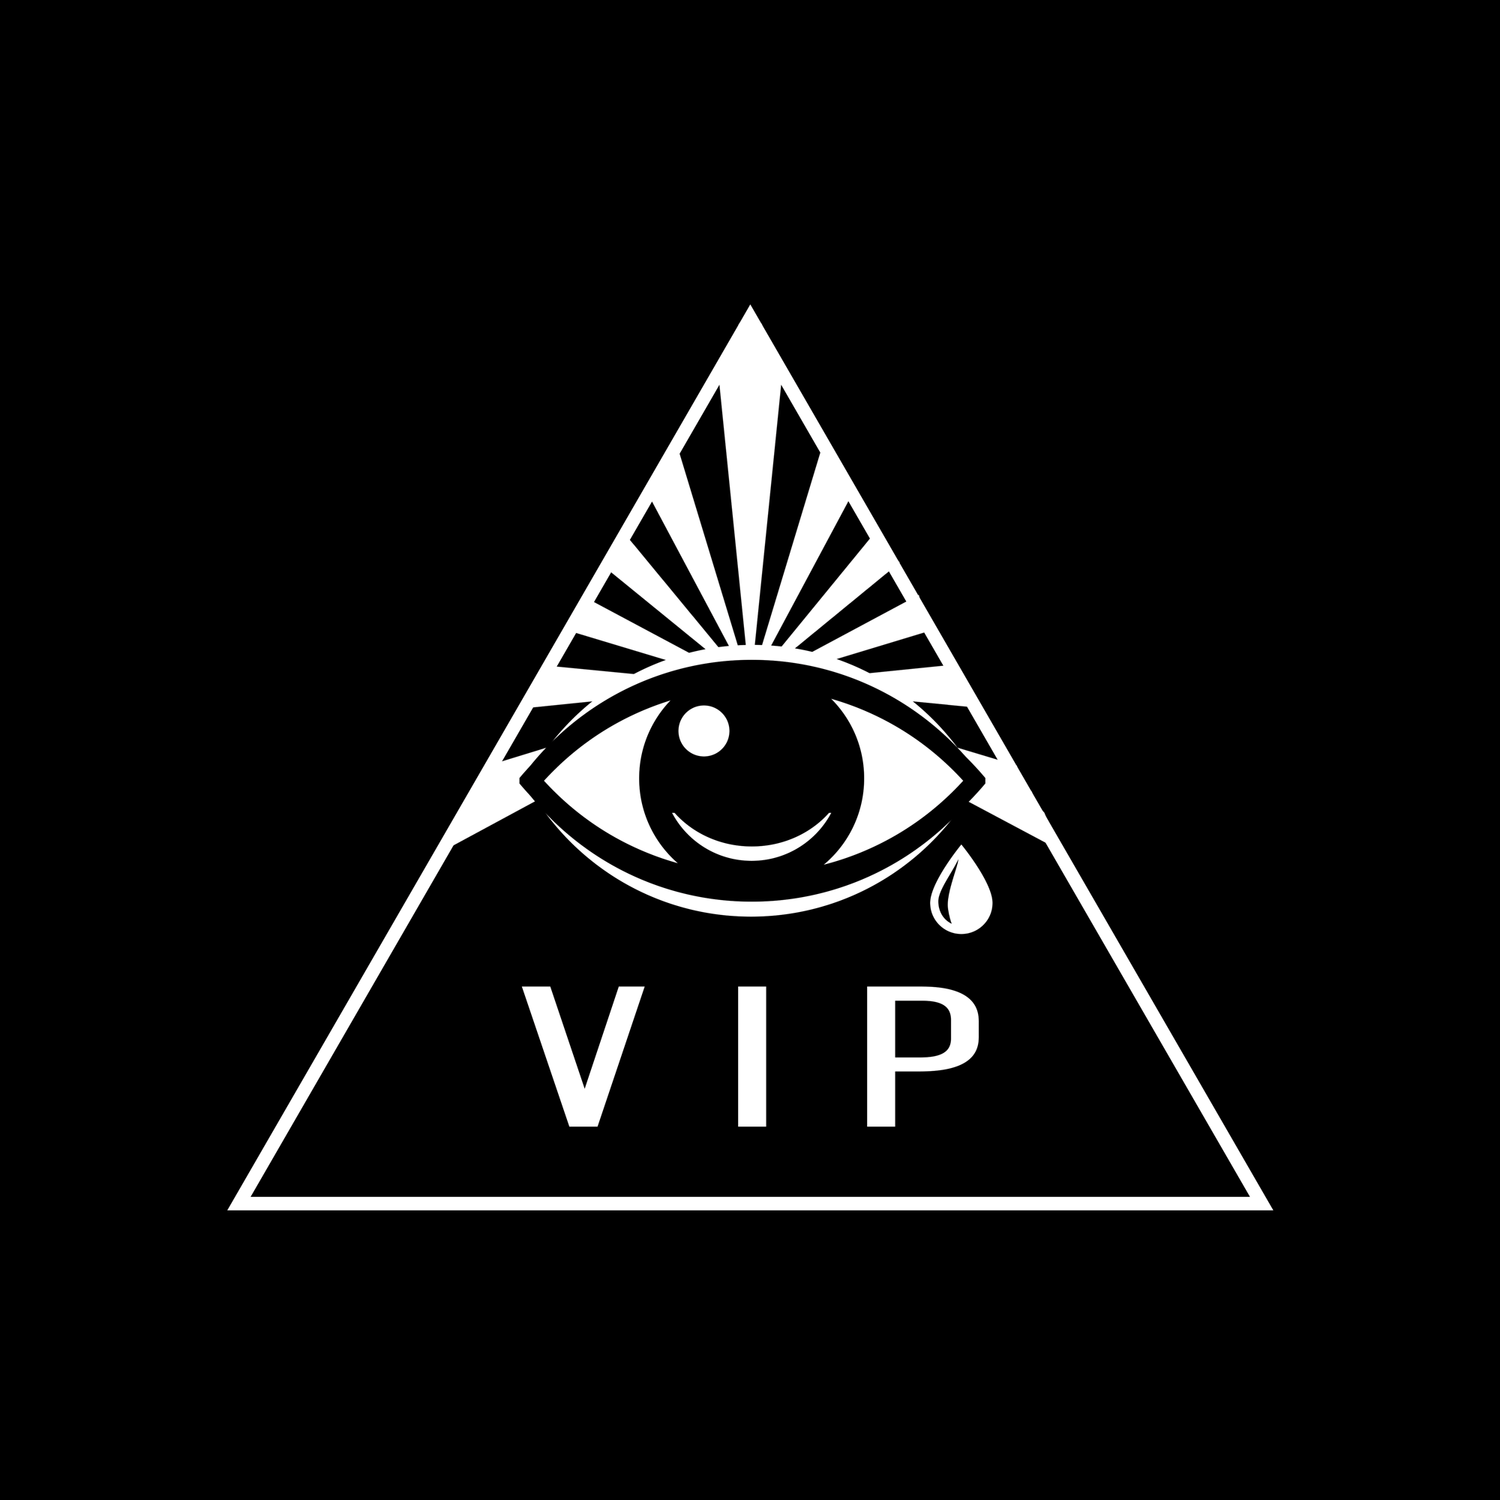 VIP Tattoo Studio | The Notorious VIP